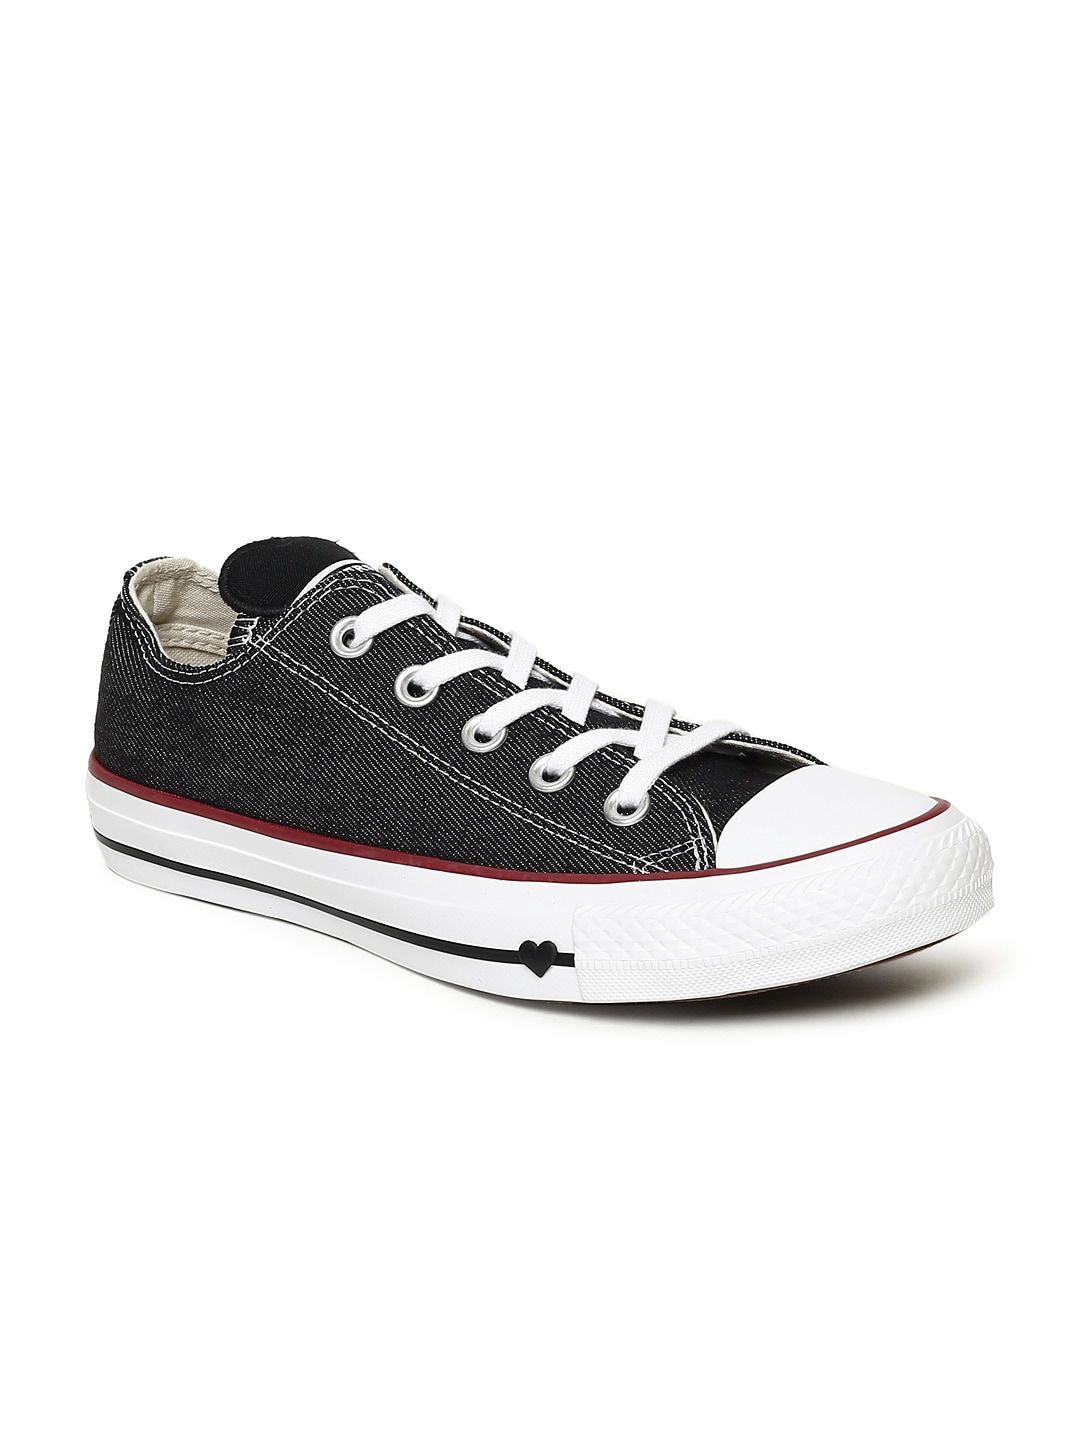 0ce4f5ef5dcb8 Converse Shoes - Buy Converse Canvas Shoes   Sneakers Online